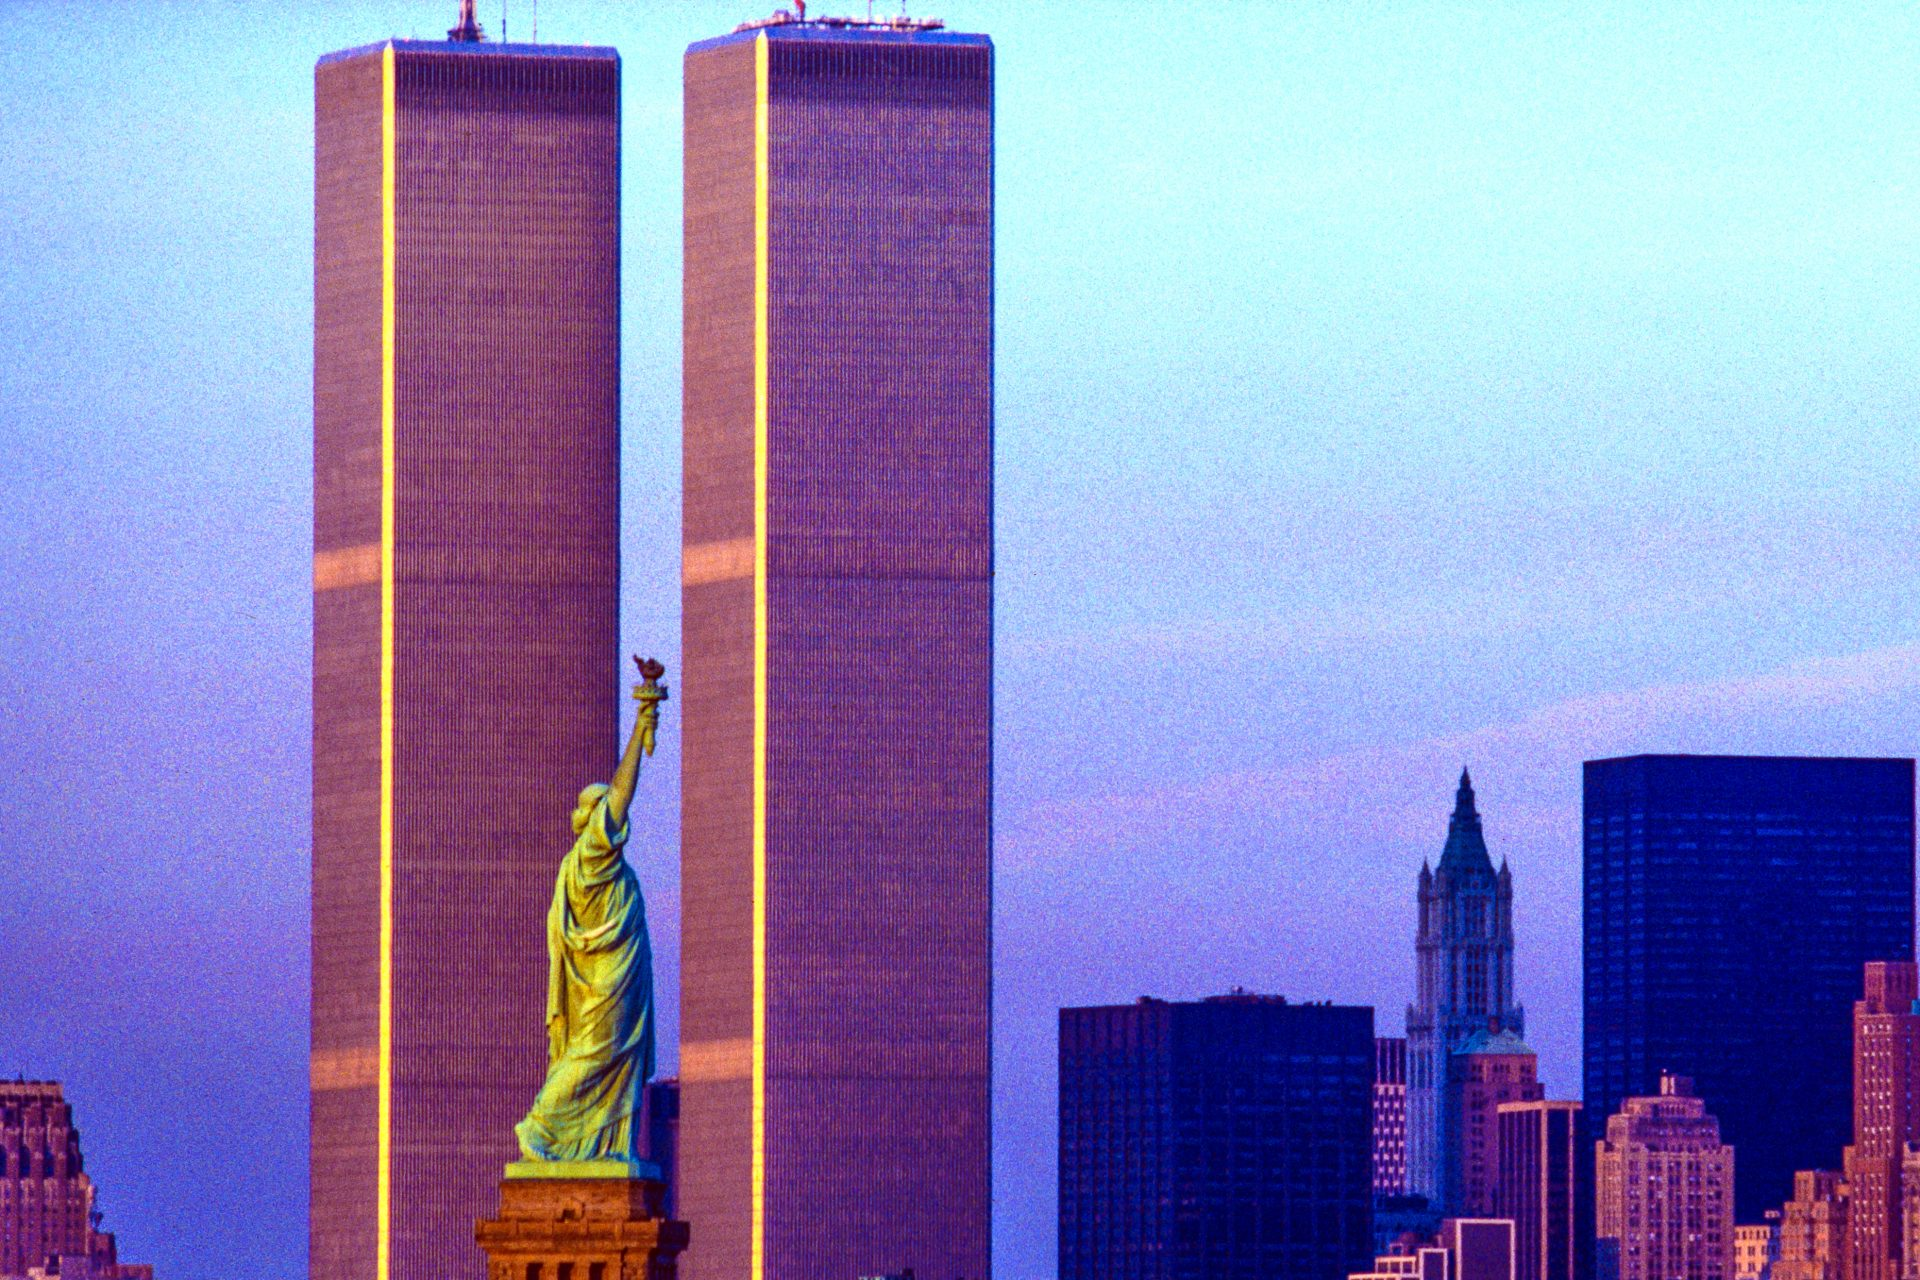 20 years after 9/11: how New York rebuilt the area of the World Trade Center